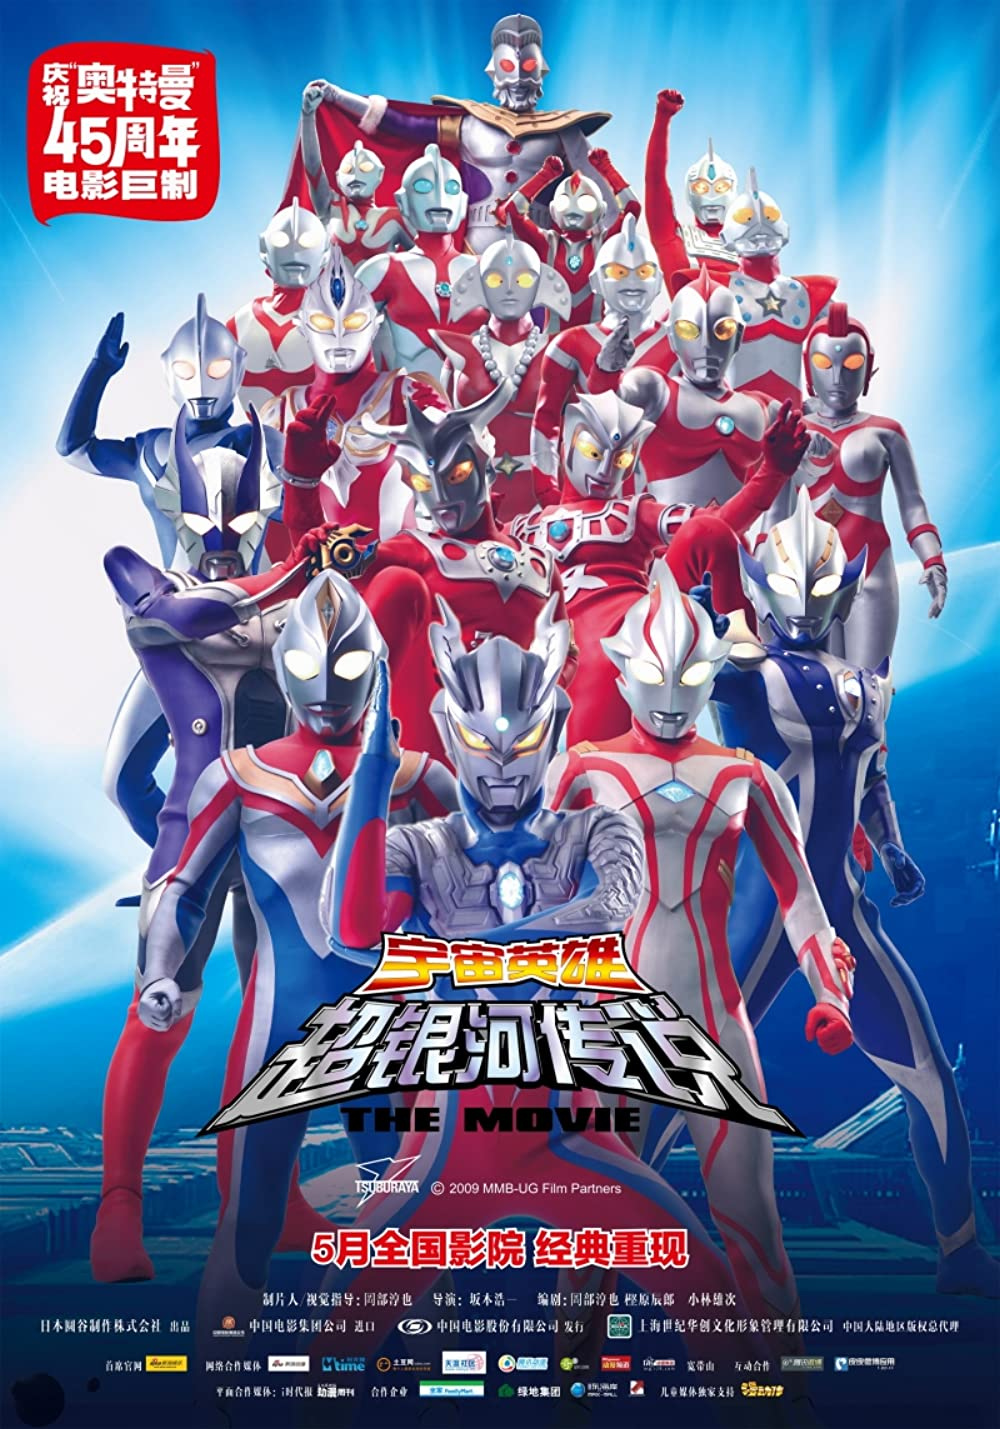 Poster featuring all the Ultra-Being